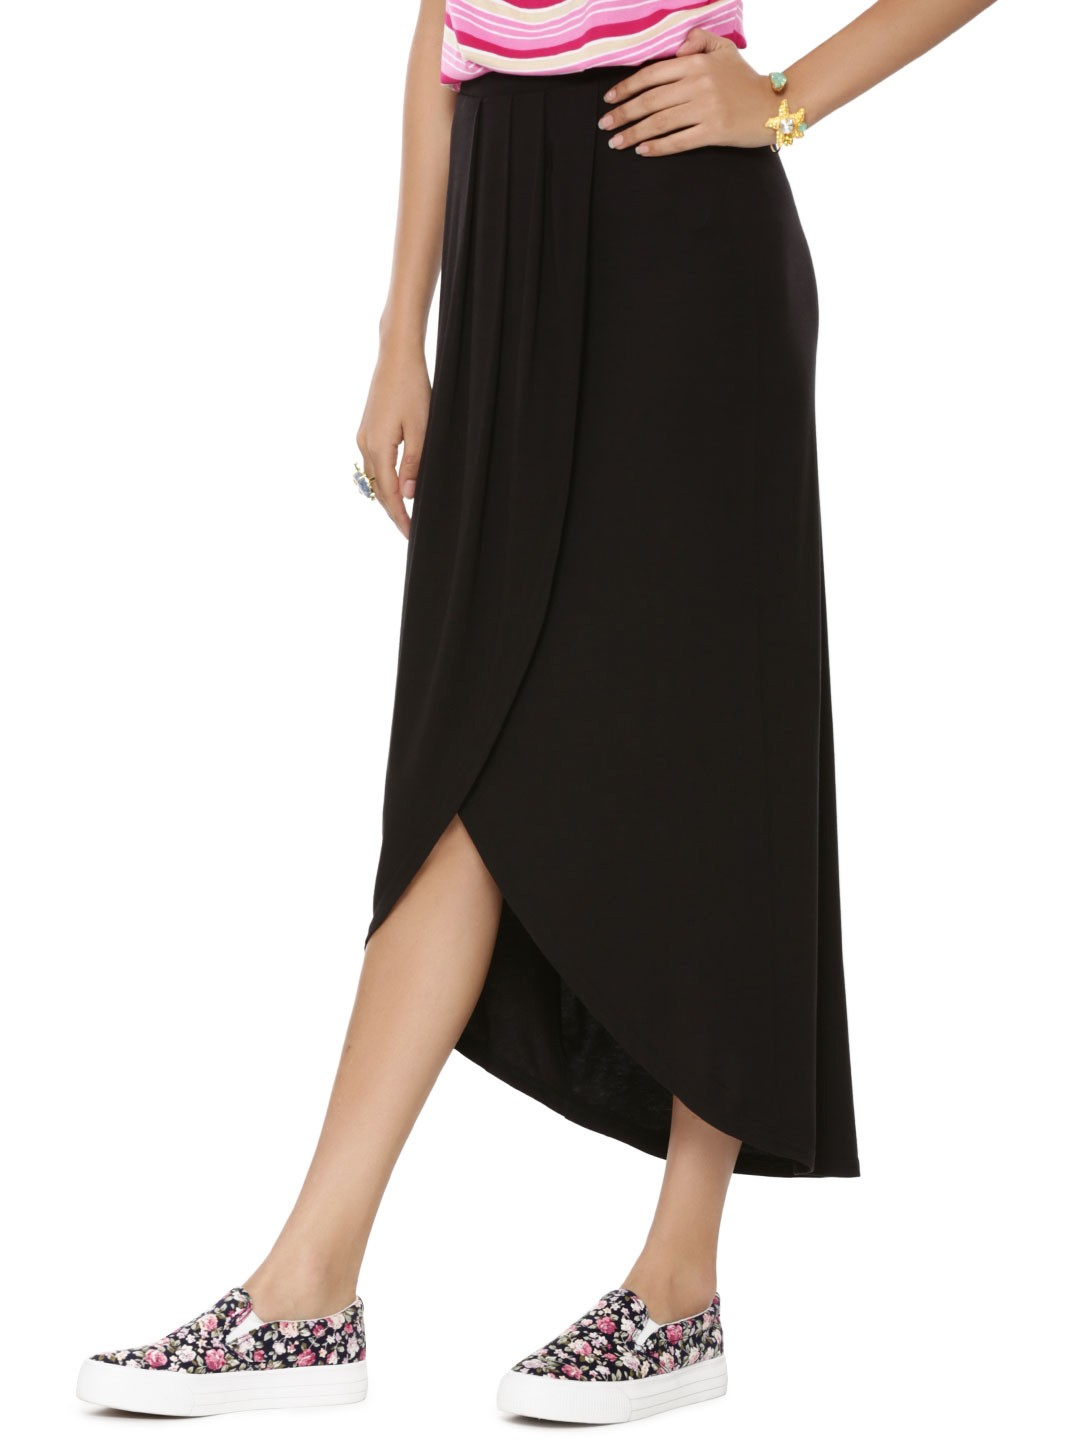 Shop for amazing bargains on New Look in Maxi skirts at Vinted! Save up to 80% on Maxi skirts and pre-loved clothing to complete your style.